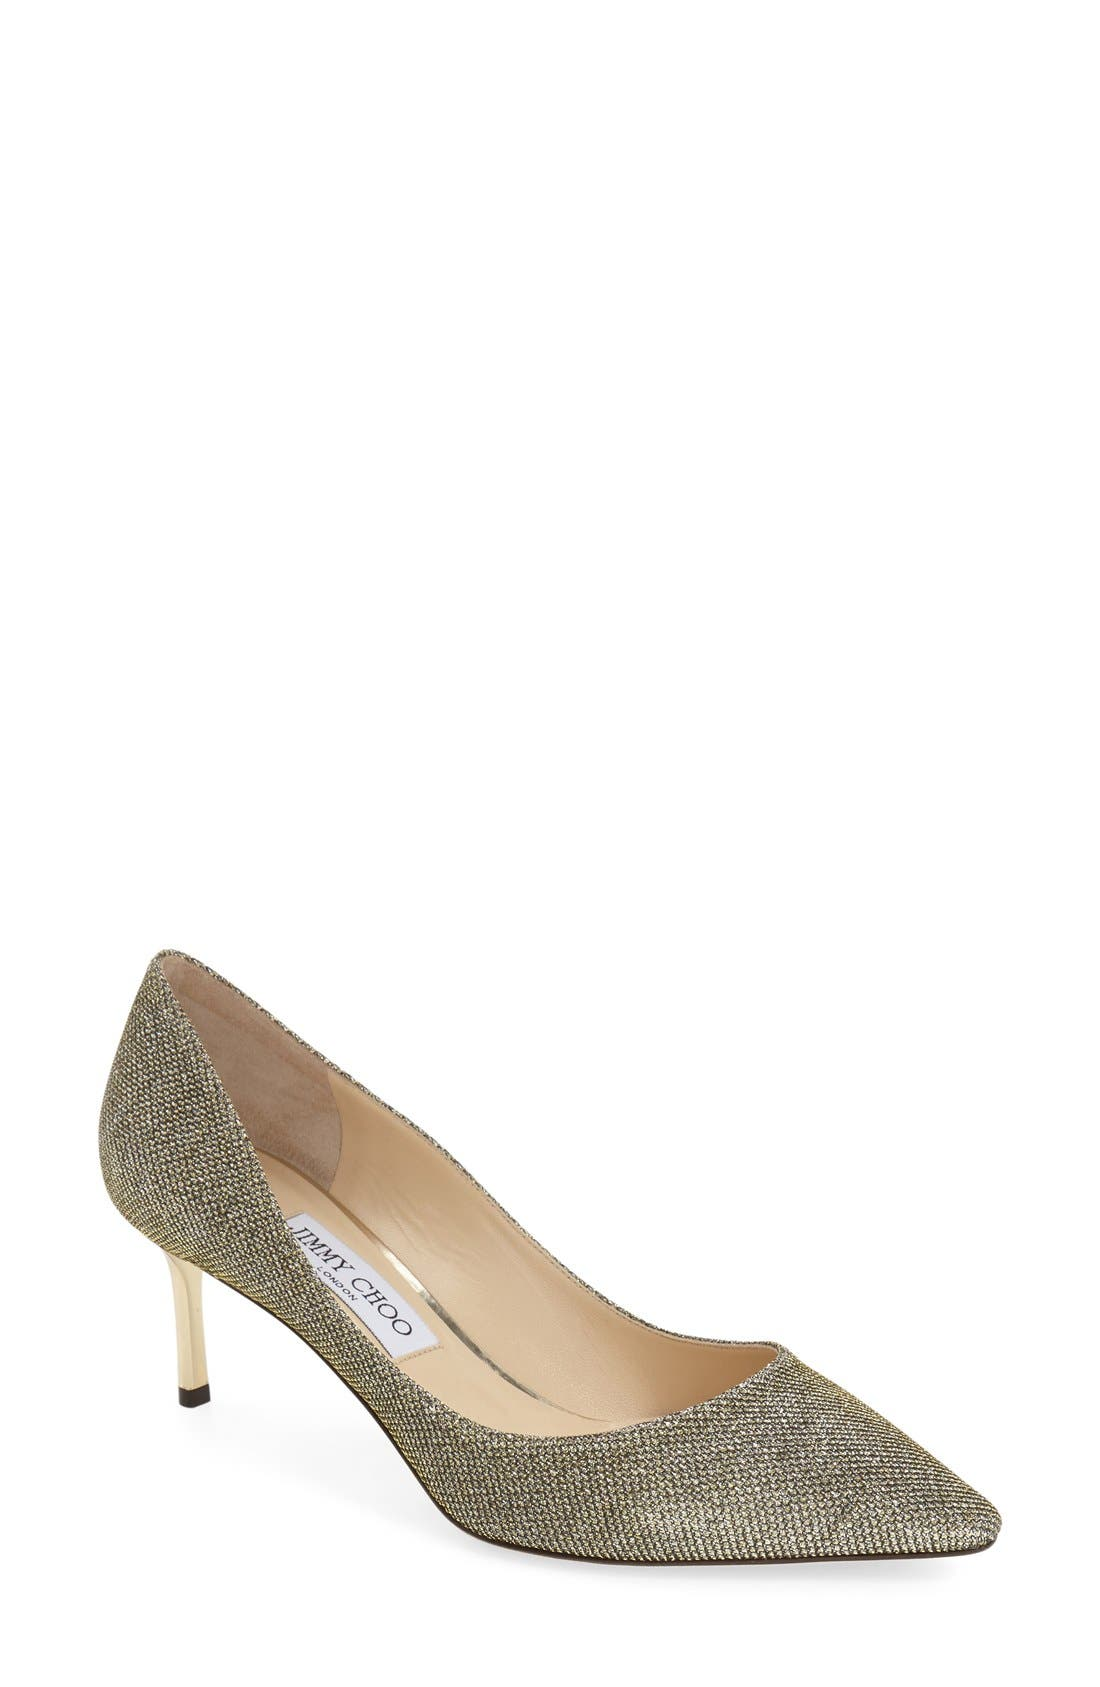 Alternate Image 1 Selected - Jimmy Choo 'Romy' Pointy Toe Pump (Women)